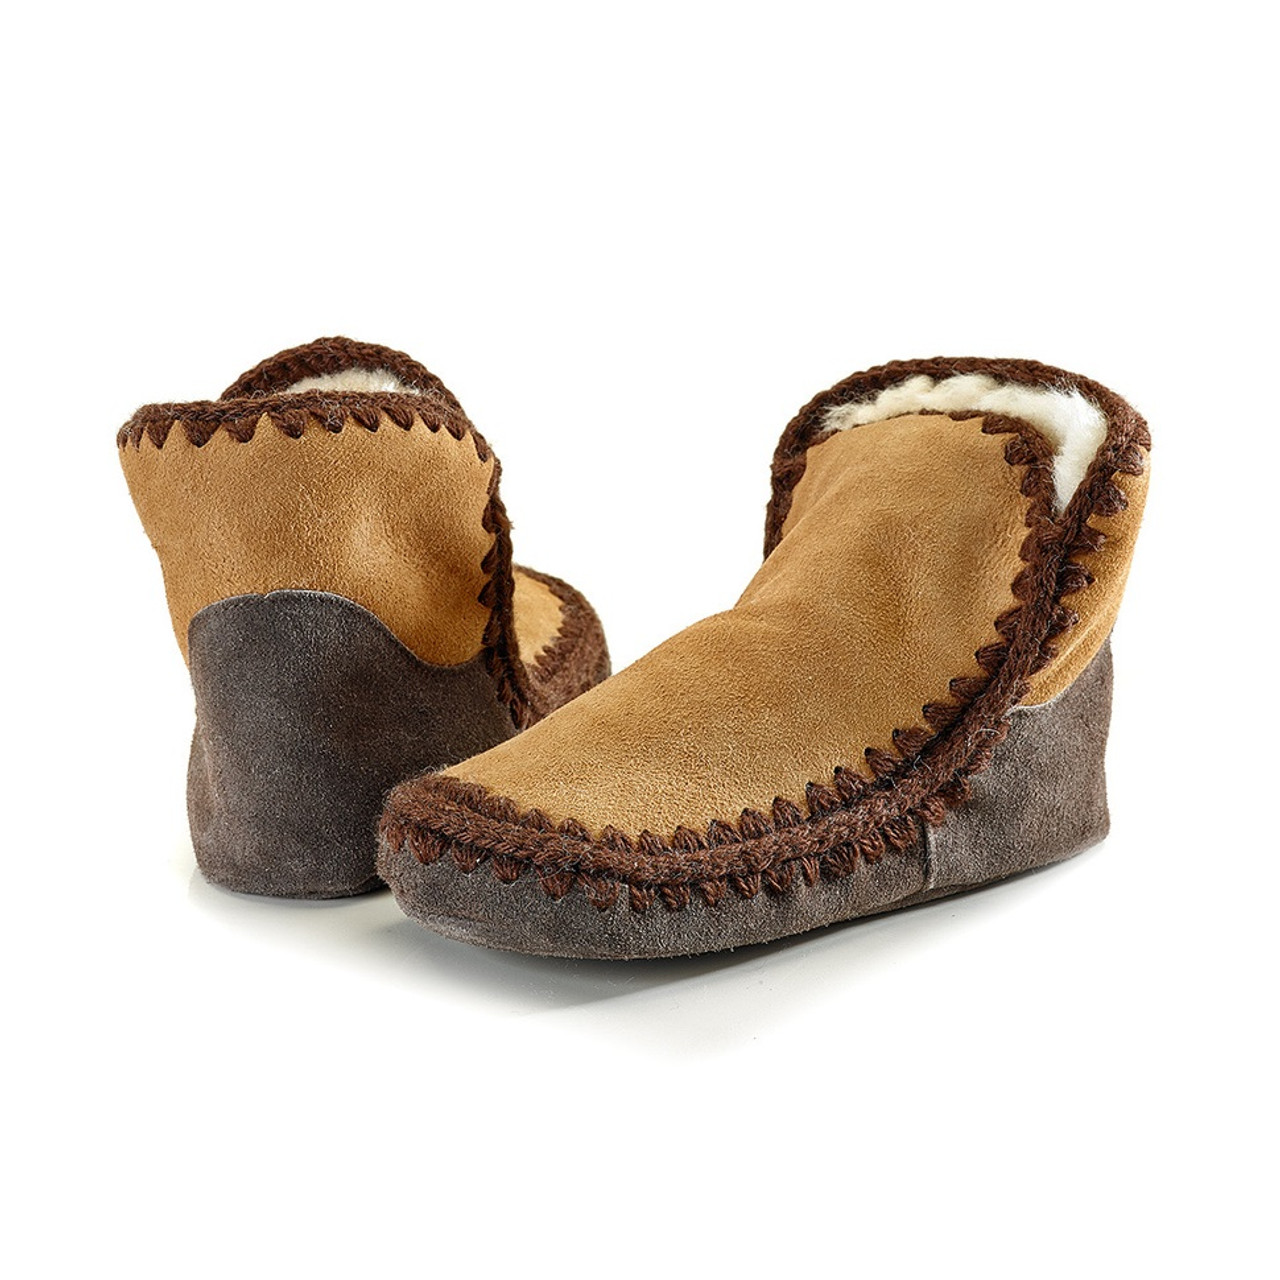 Classic Sheepskins Snuggle Feet Slippers - The Tin Shed